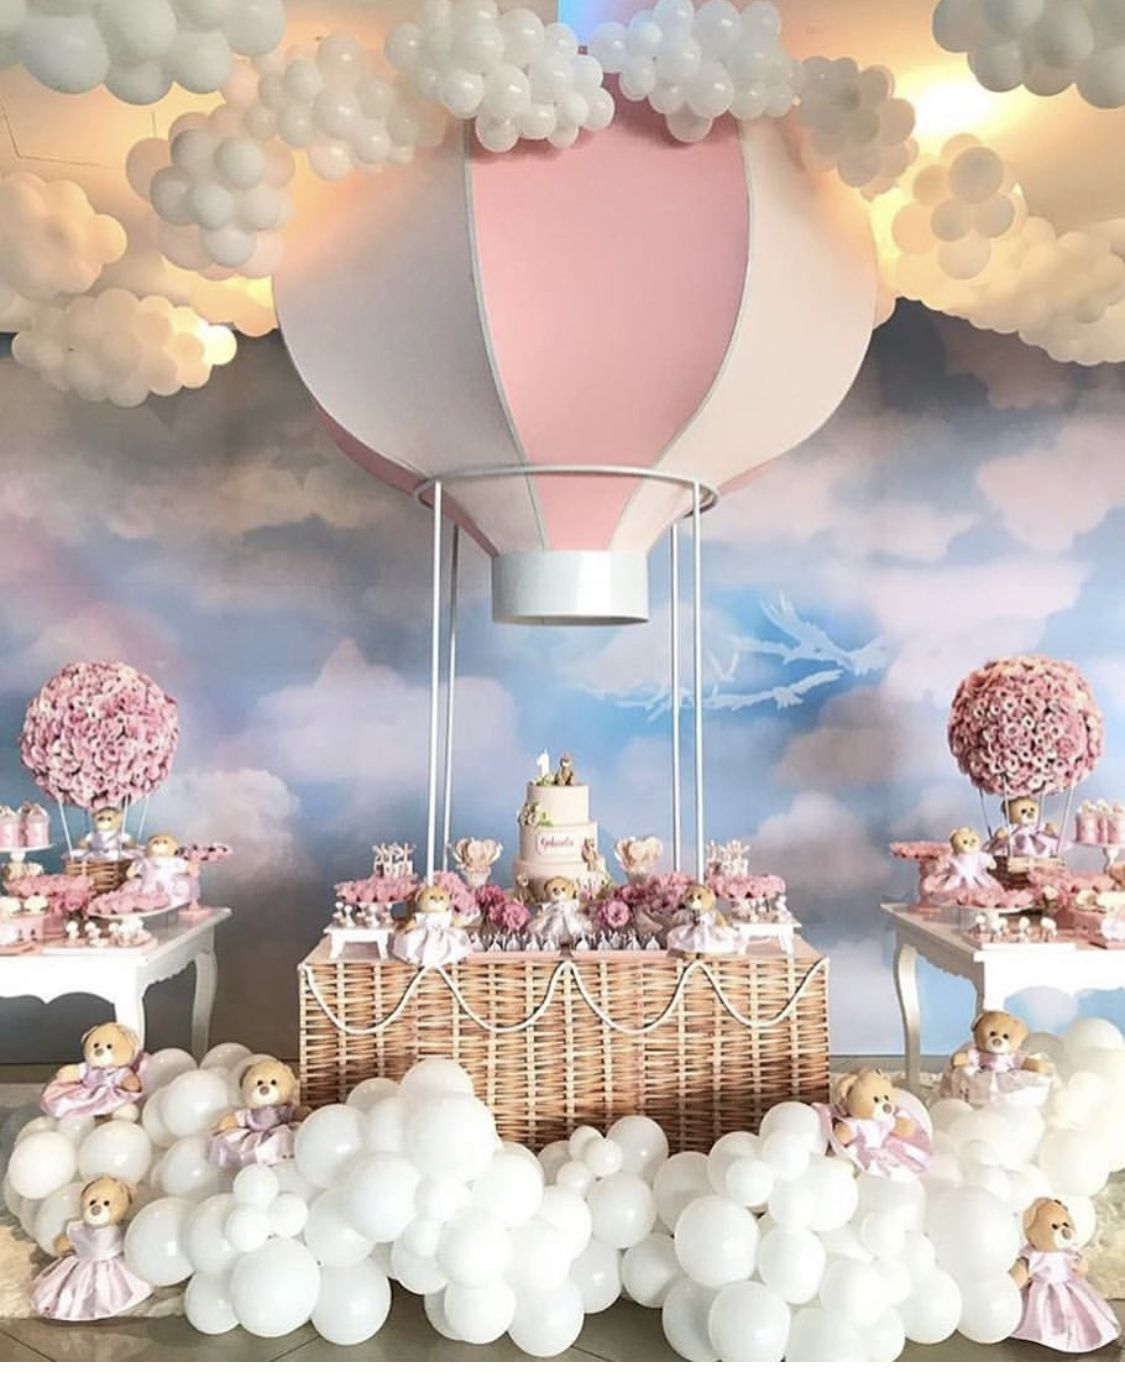 Pin by Caroline on Baby (With images) | Balloon birthday themes